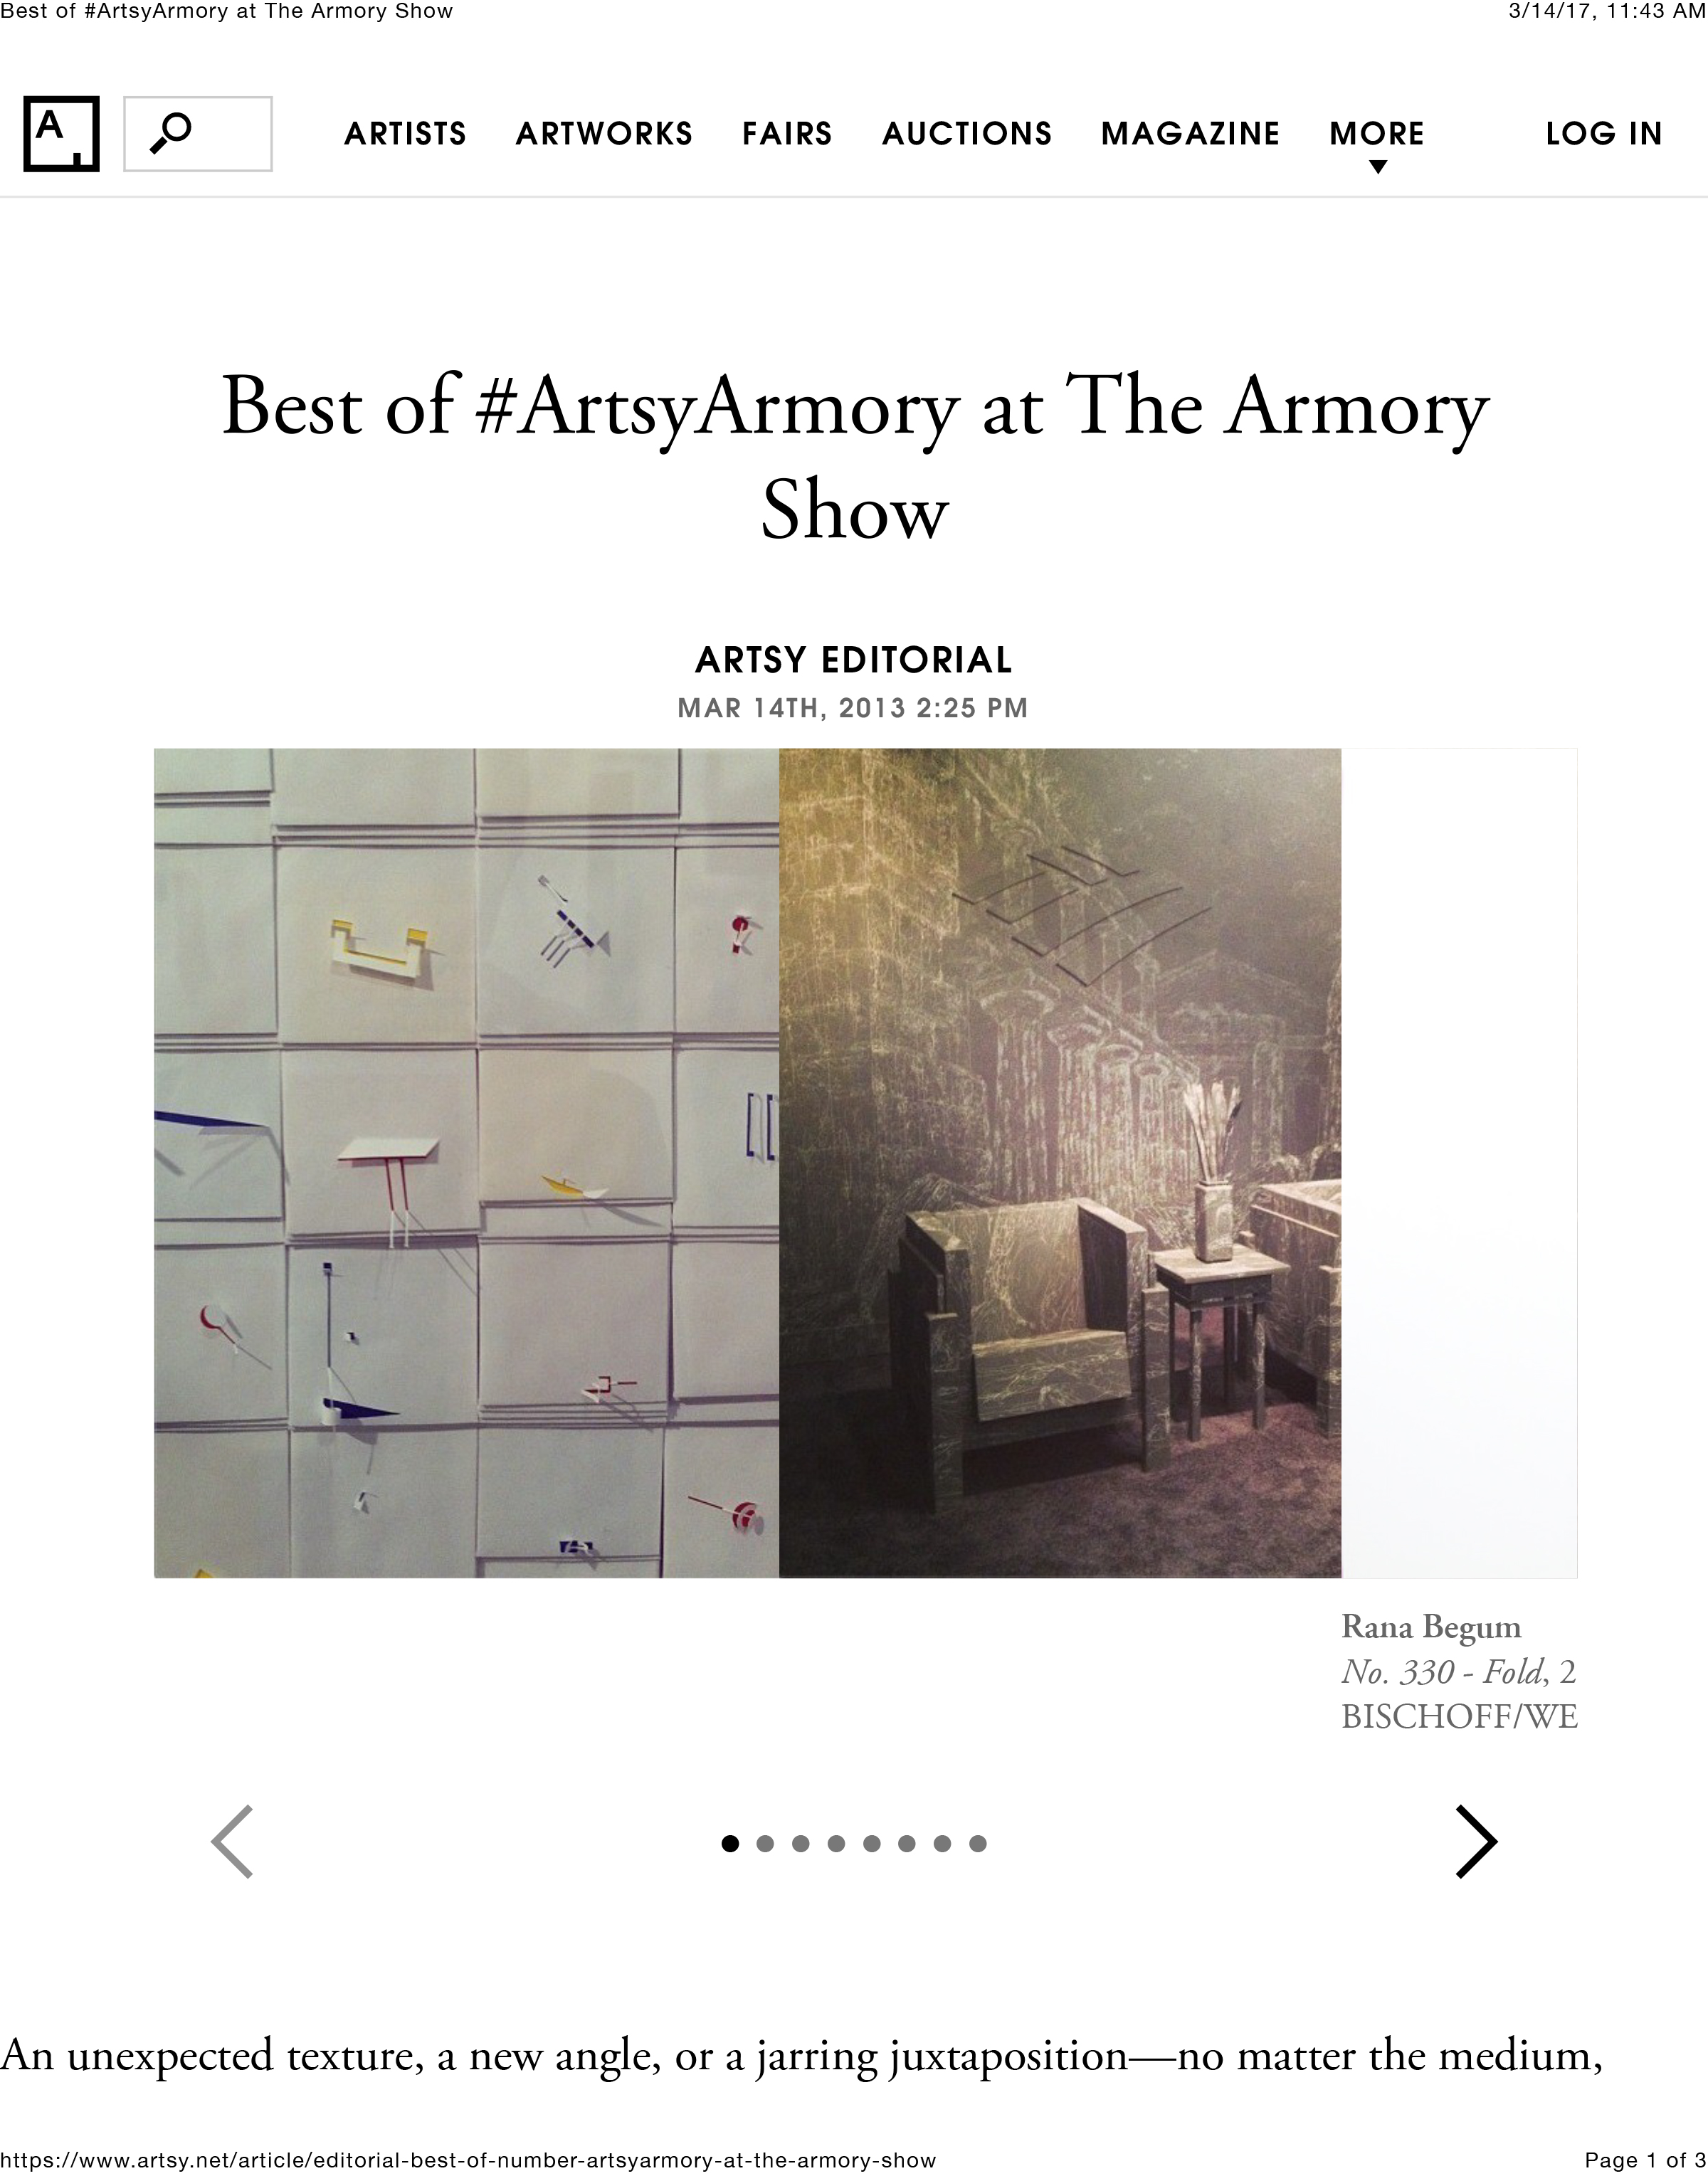 Artsy Best of the Armory Show